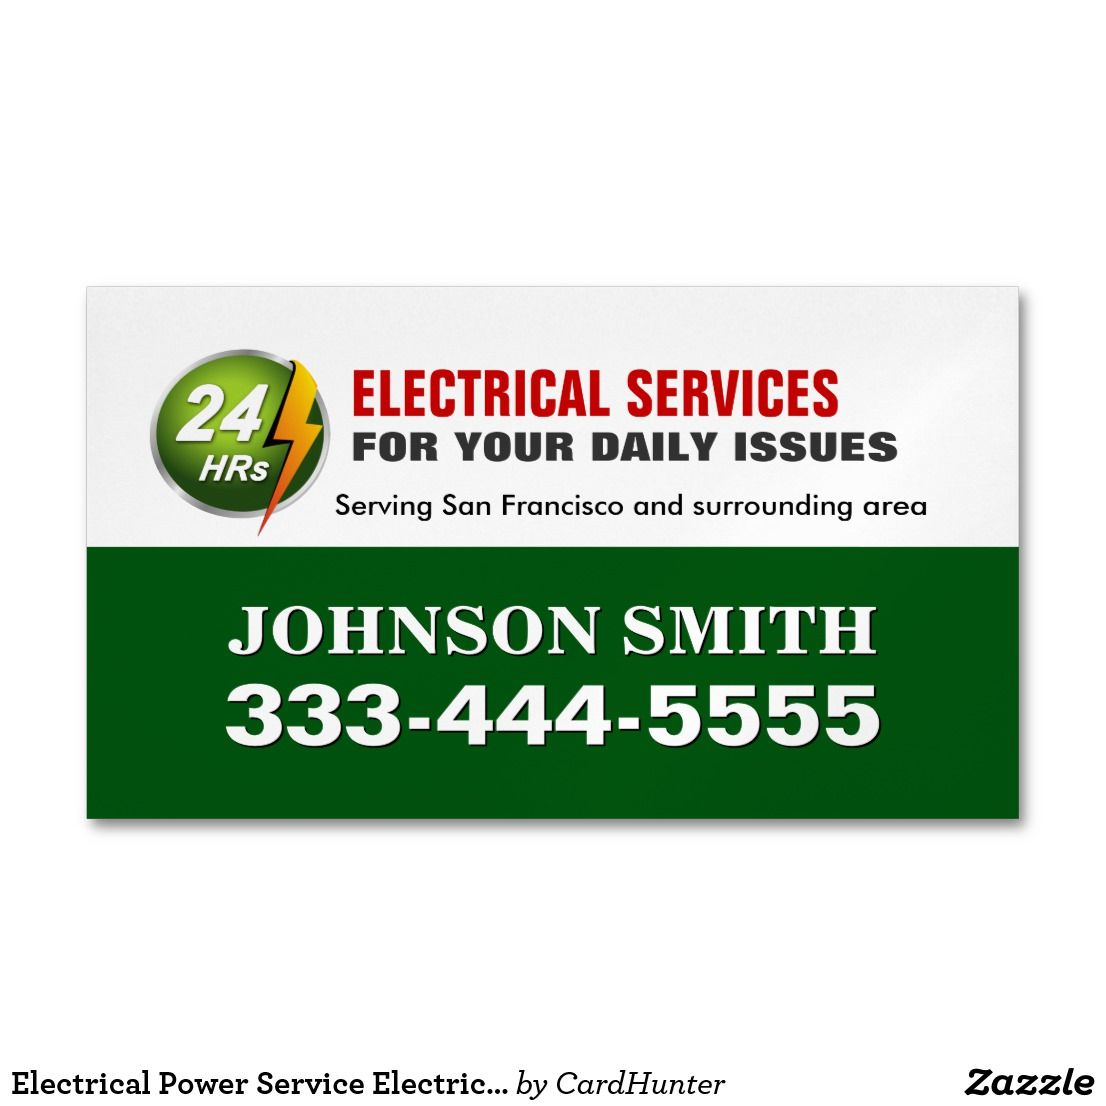 Electrical Power Service Electrician Fridge Magnet Business Cards